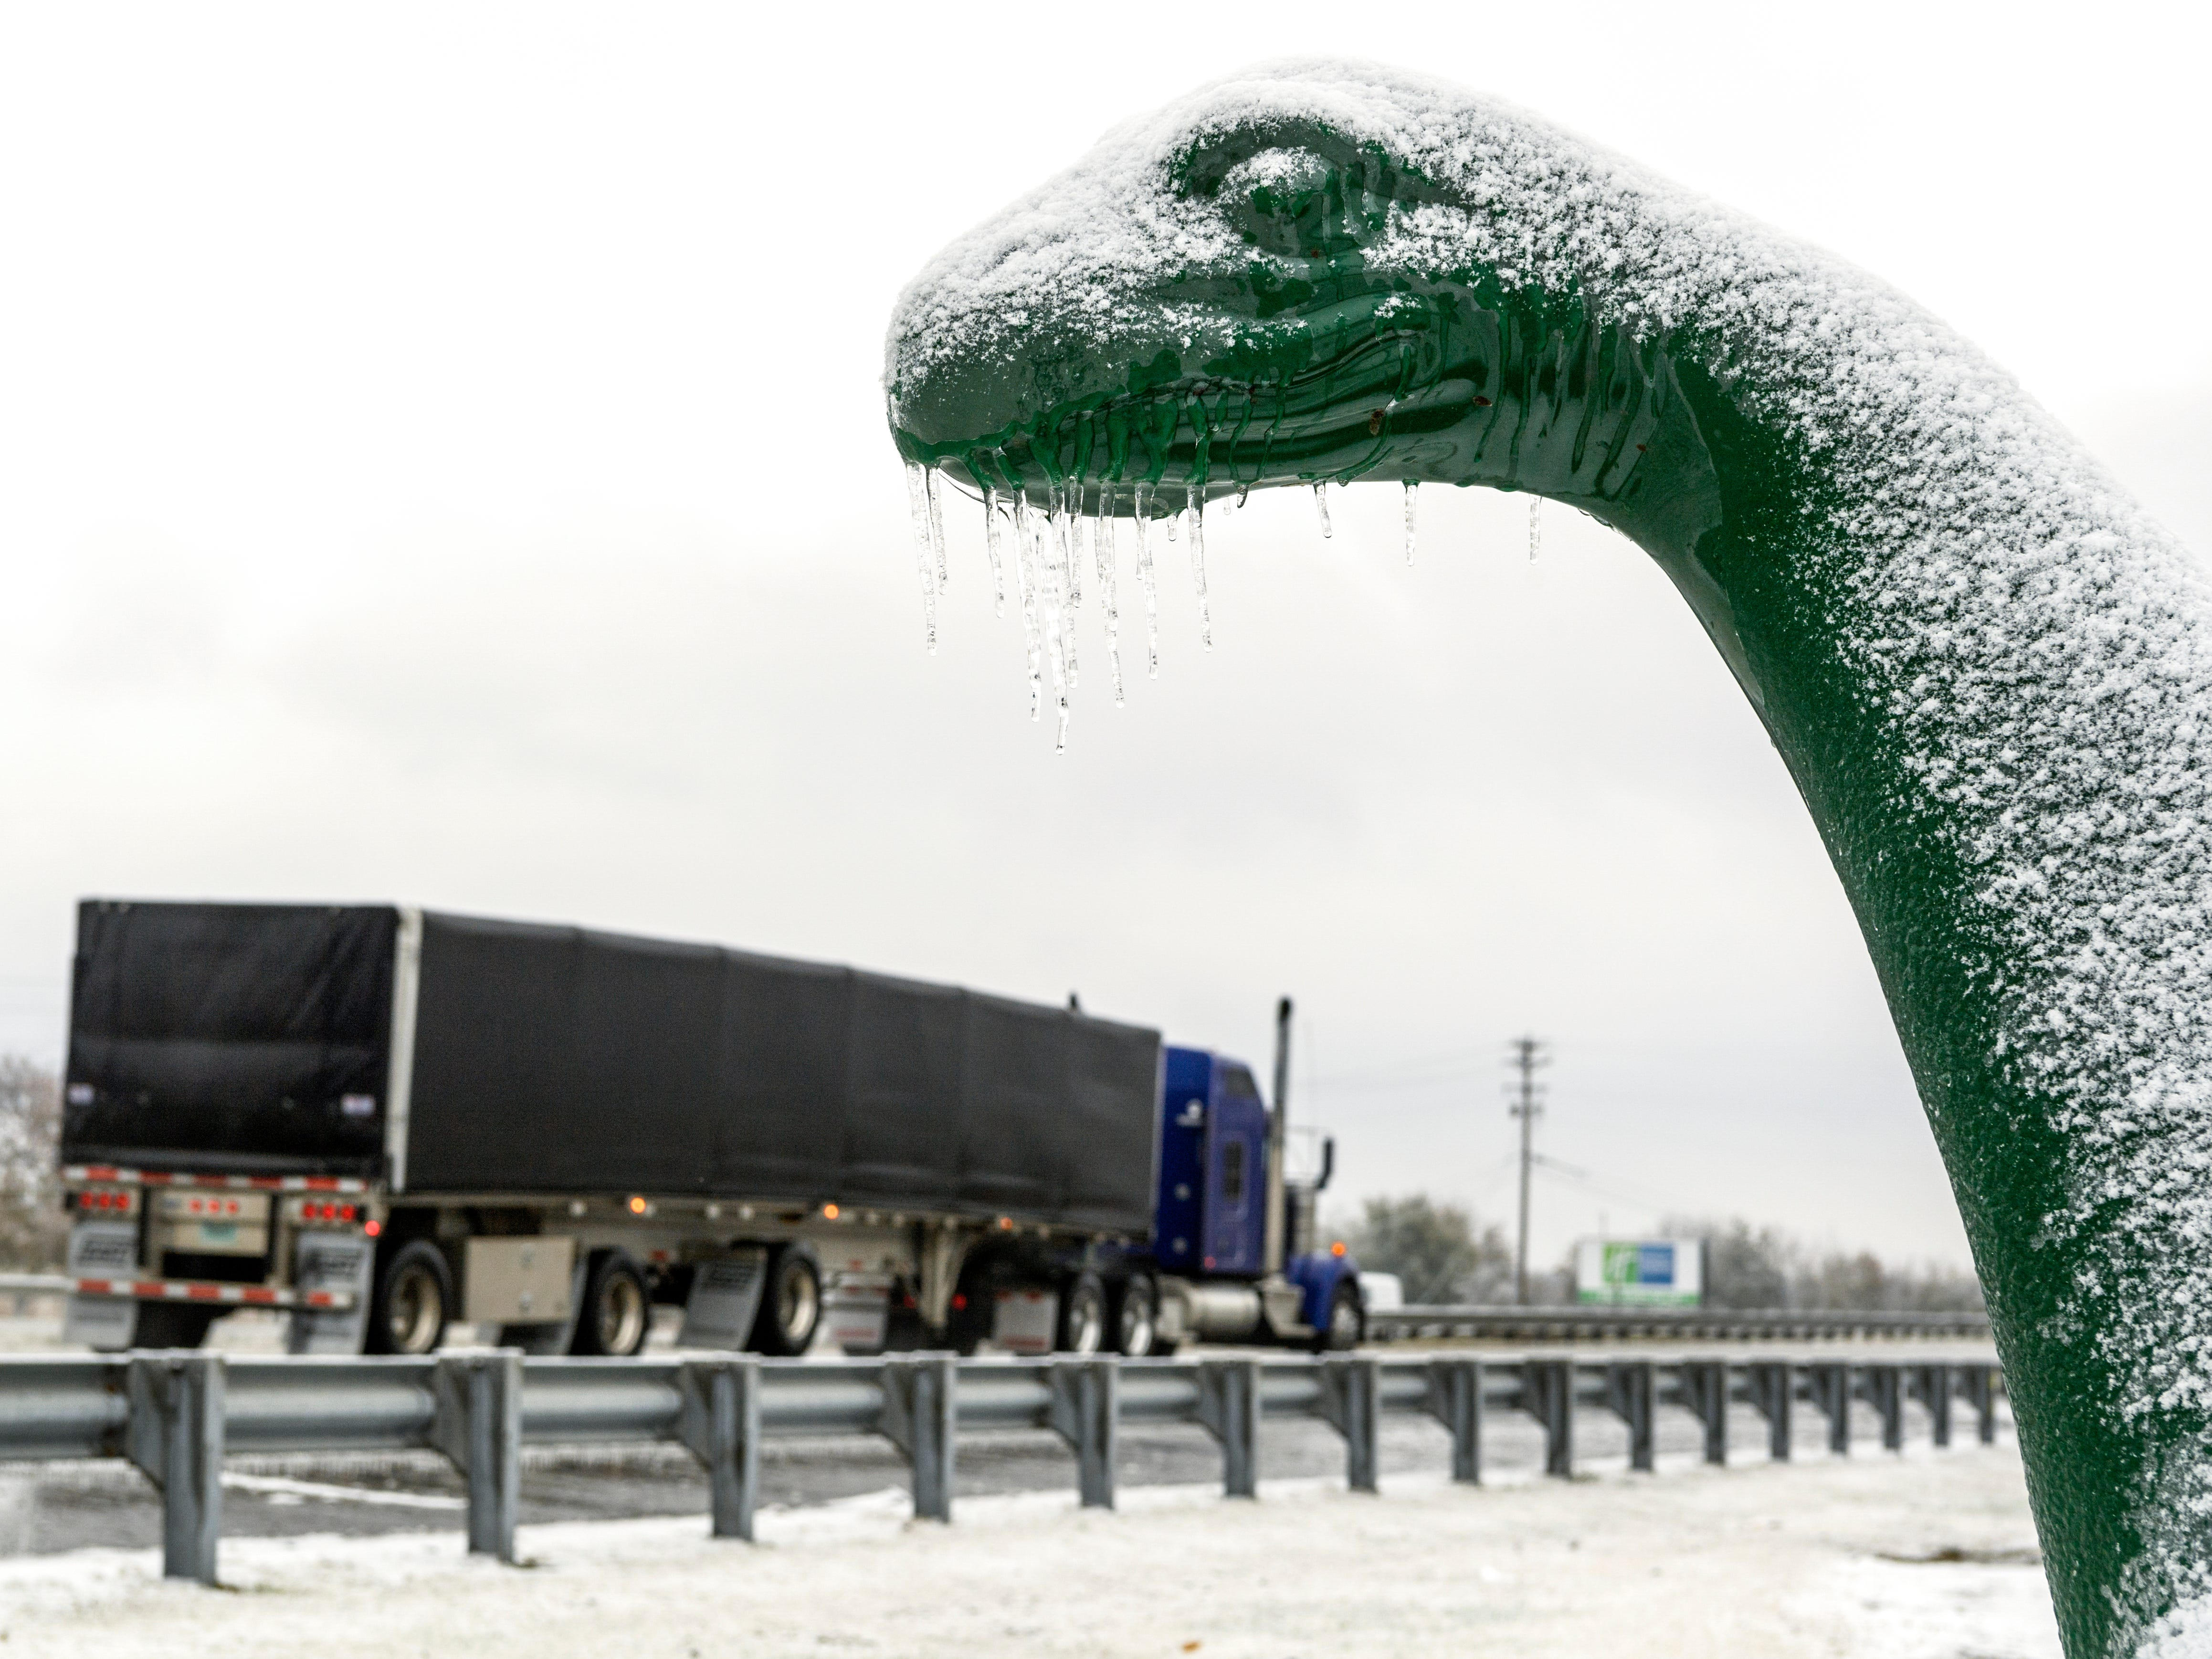 Icicles hang off the dinosaur outside of the Sinclair gas station near the Twin Bridges on US-41 in Henderson, Ky., Thursday, Nov. 15, 2018.